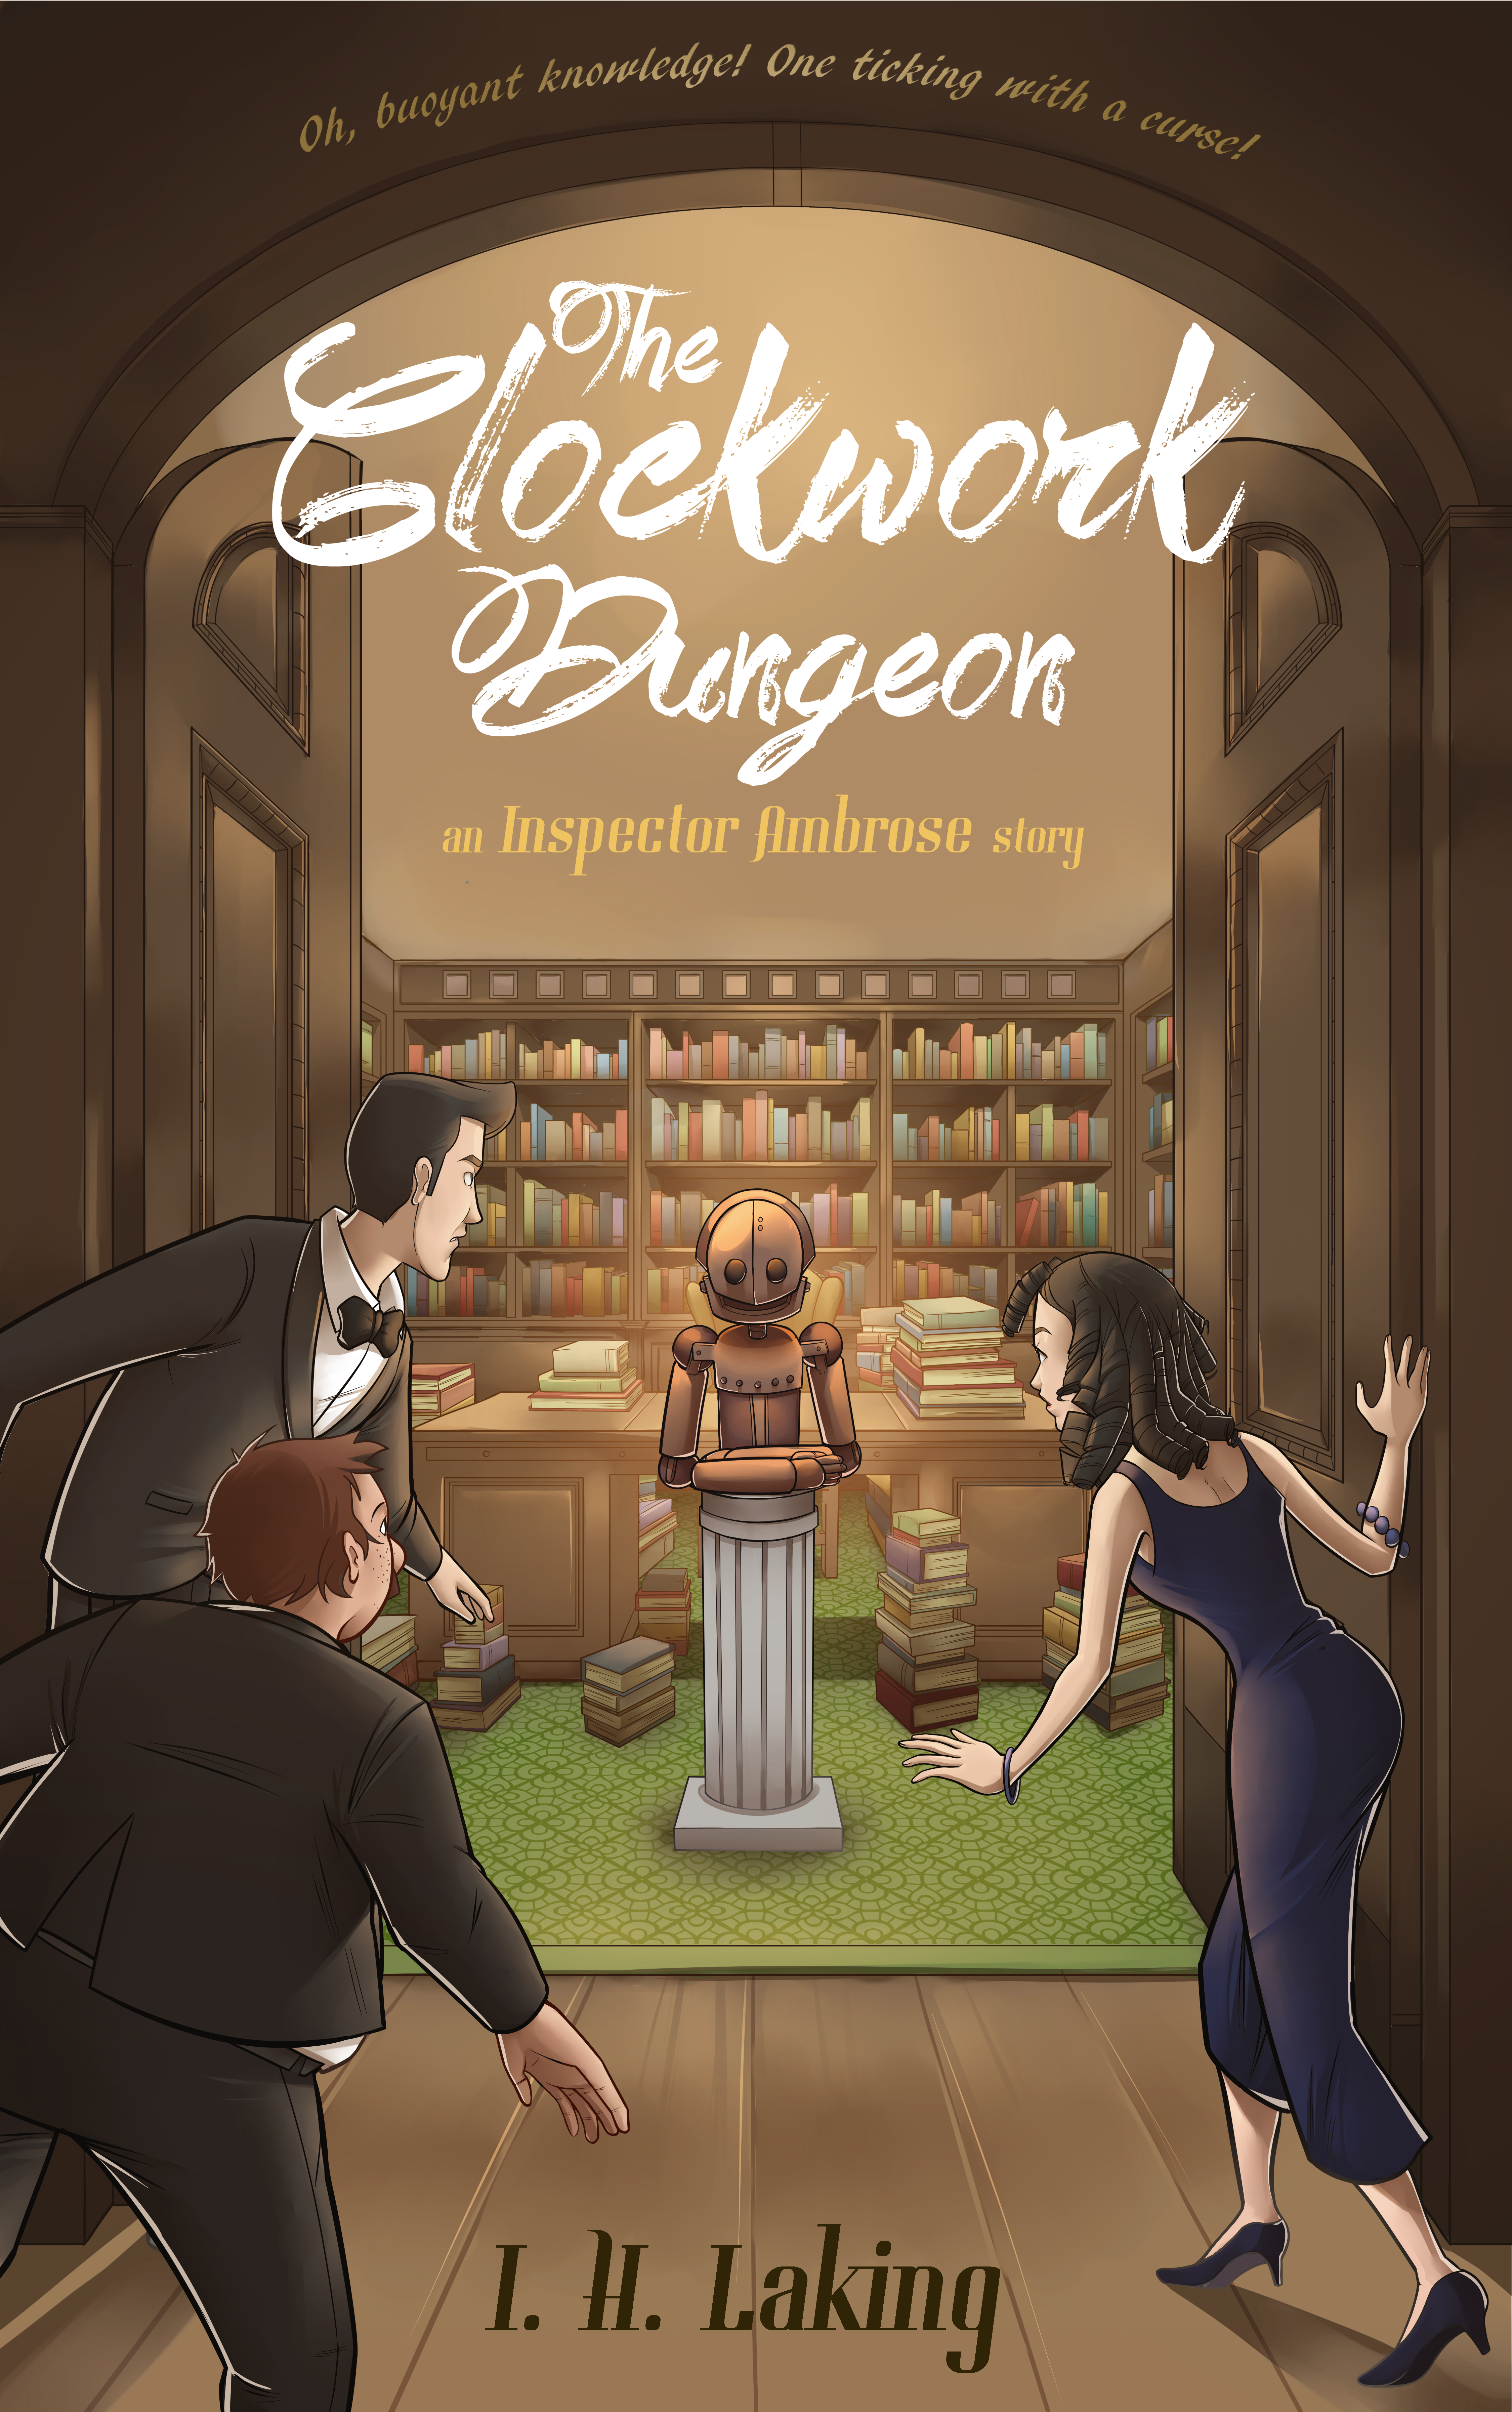 The Clockwork Dungeon is Out Now!